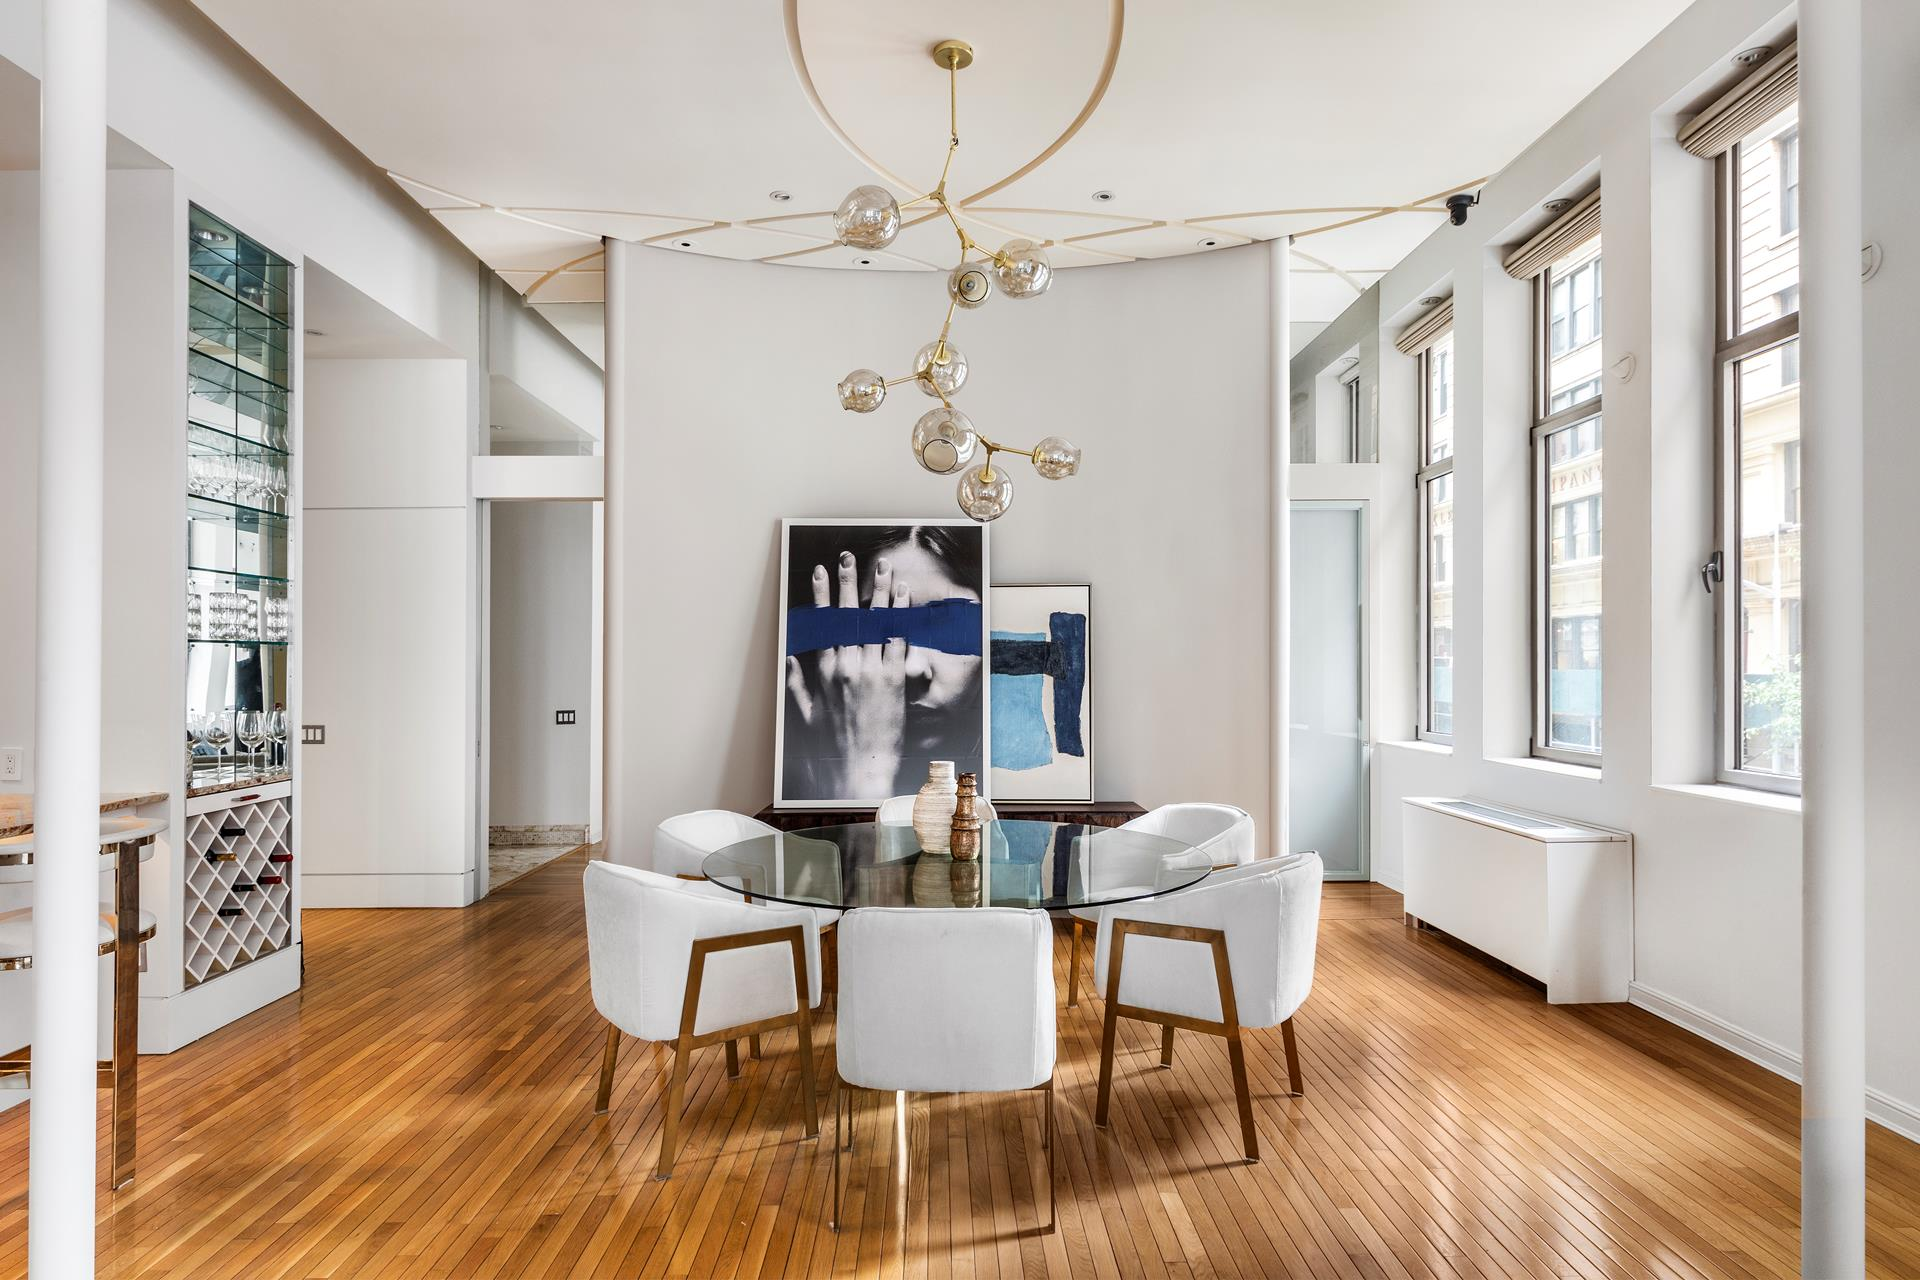 This spectacular 3-bedroom loft (currently configured as a two beds) is located in the Chelsea Mercantile, one of the most desirable prewar condominiums in the neighborhood.At 2,200 square feet this corner loft with over 13' ceilings and tall oversized windows, Apartment 3I is truly a unique offering of prewar elegance completed with modern design. A gracious entry gallery leads you into the massive living and dining area that creates a perfect entertaining space. The pristine hardwood floors throughout, generous built-ins, an abundance of natural light, and designer custom lighting for showcasing art are some of the features that make this apartment so special. There are two planting terraces off the north and west facing corners that allow for a unique opportunity to have an outdoor component in this loft home.The chefs-kitchen has Viking appliances, custom cabinetry, stone countertops, and storage for wine. The master suite includes three large closets and a walk-in as well as a five-piece spa bath with double sinks and separate soaking tub and an oversized shower. The split bedroom layout is ideal for privacy and use of space.Built in the early 1900s, The Chelsea Mercantile is a well-established full-service prewar condominium in the heart of Chelsea close to shopping, dining, public transportation, and the highline. Amenities include a beautifully renovated lobby, 24-hour doorman, live-in super, private storage, children's playroom, dry-cleaning services, gym, parking and a 10,000 sqft planted/furnished roof-deck with unbelievable city views. In addition, there is a Whole Foods located at the ground level making grocery shopping more than convenient.